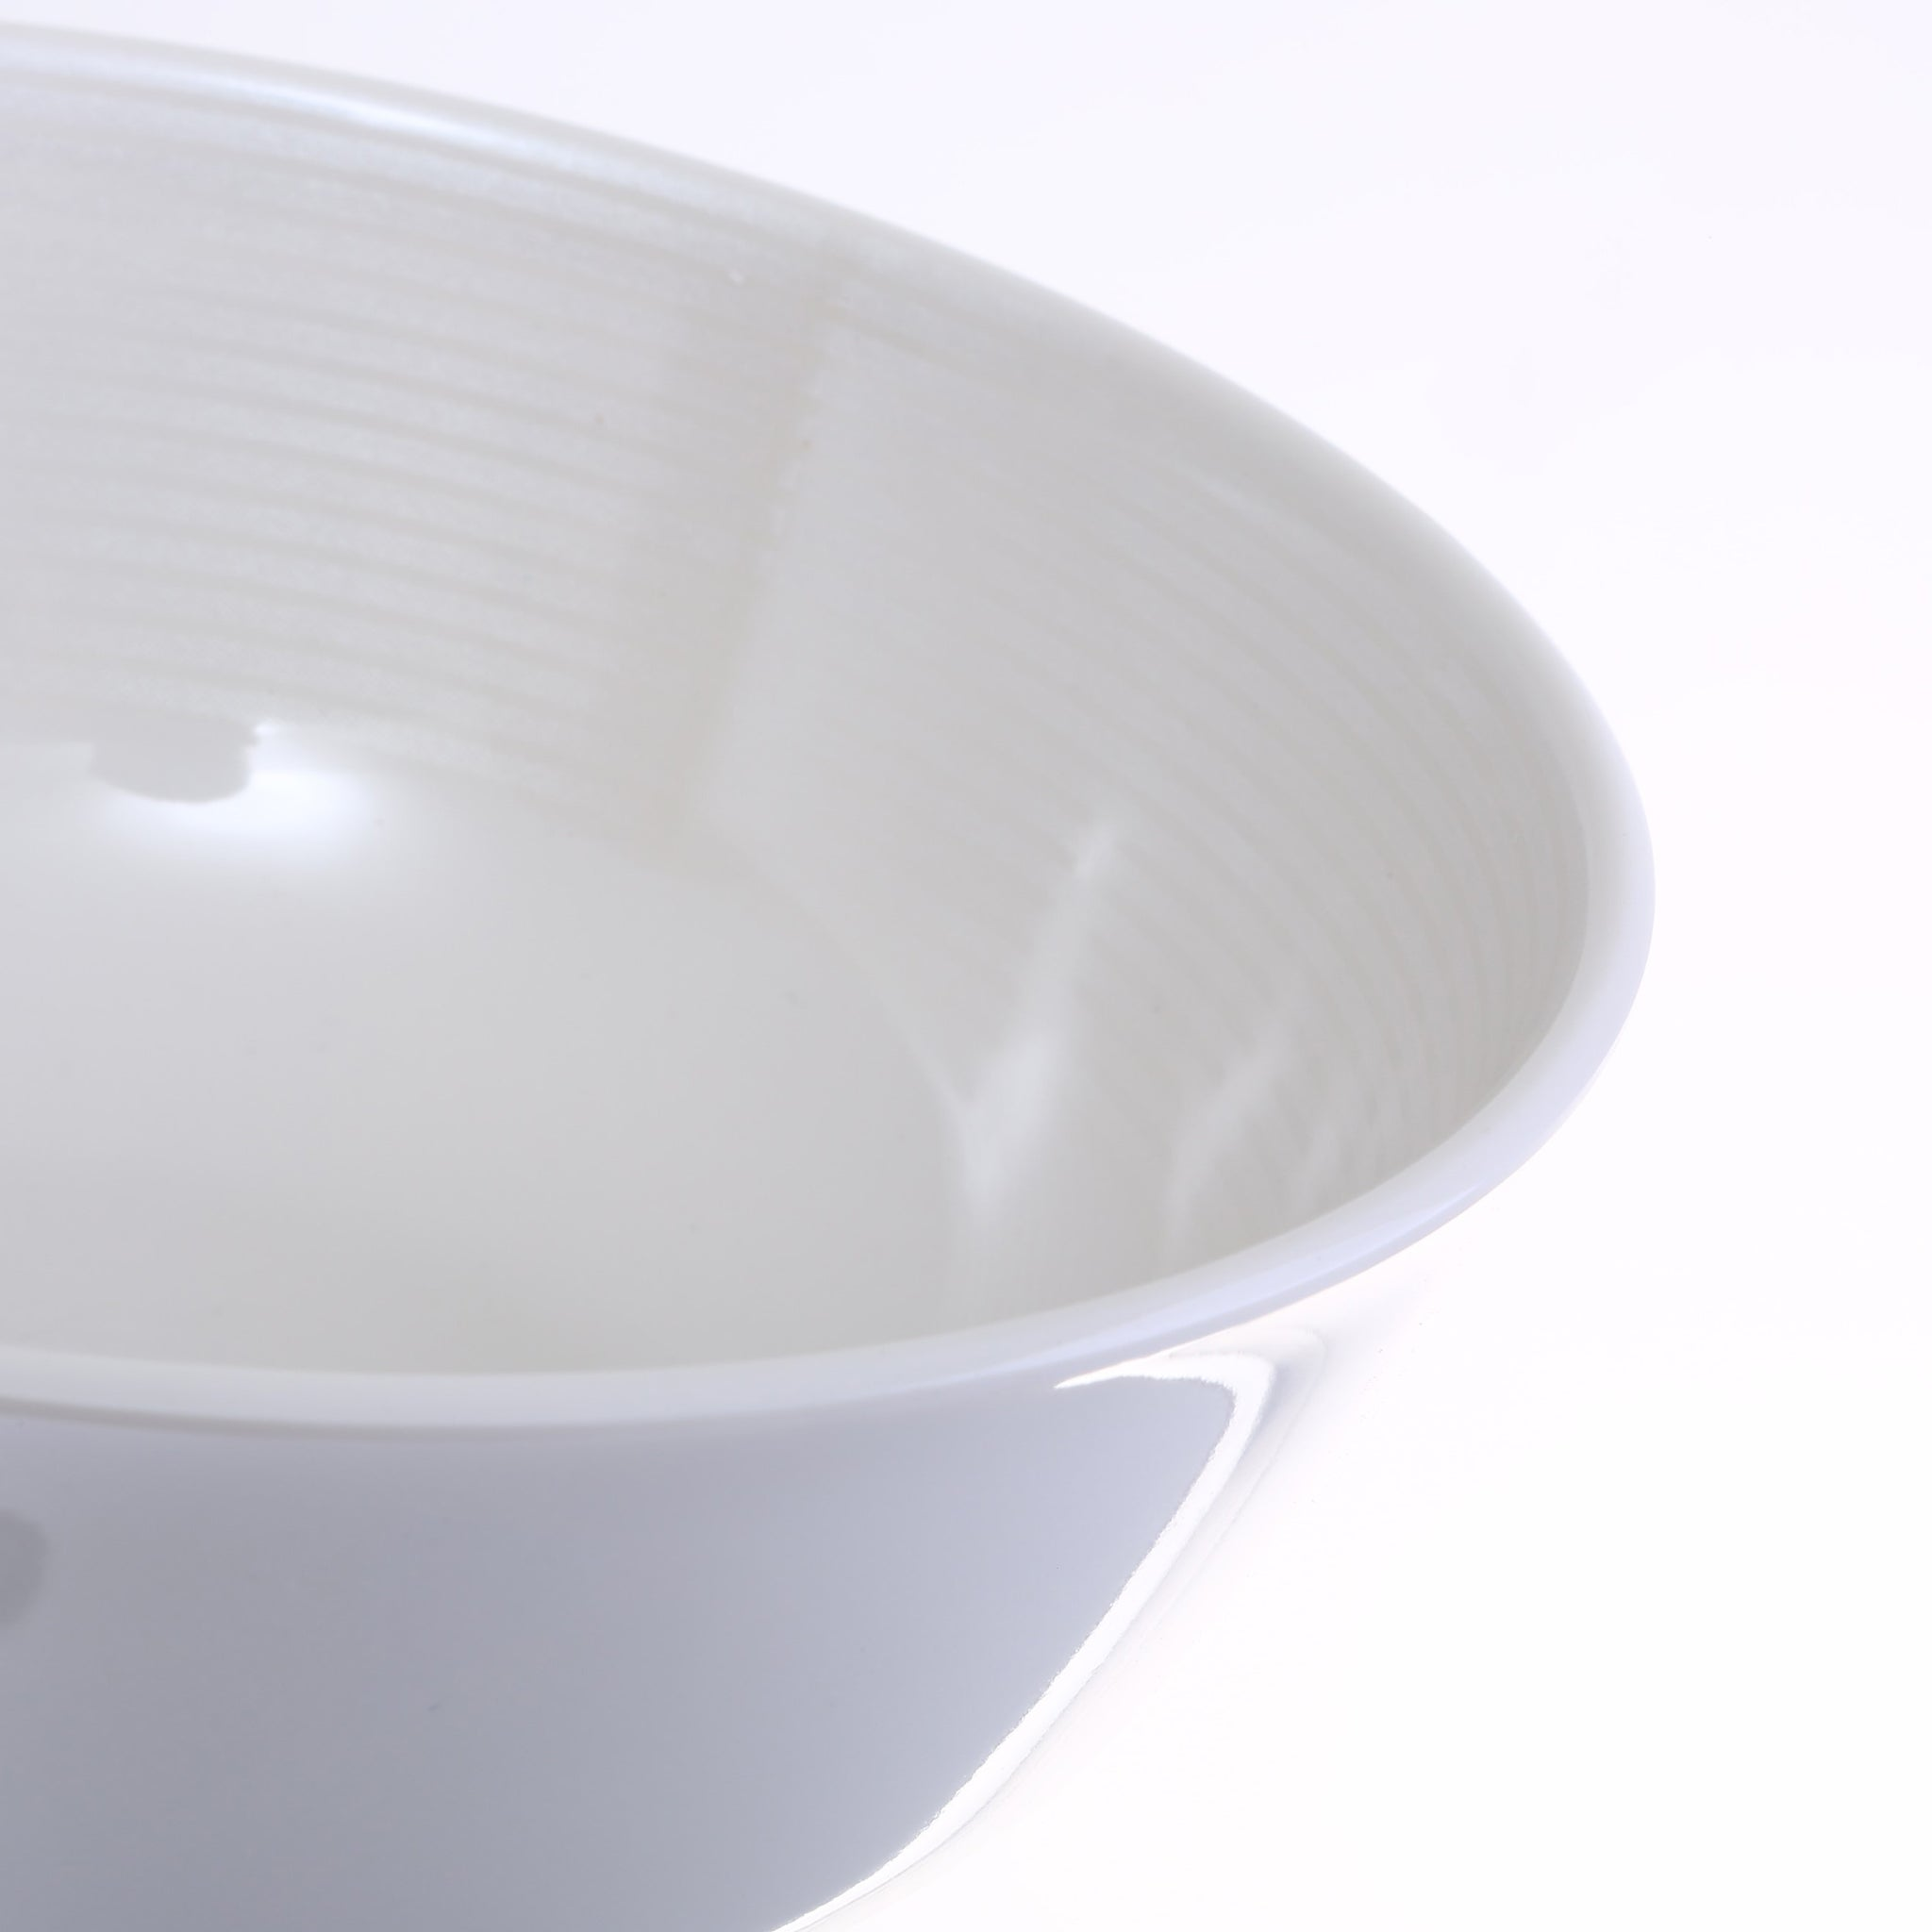 Royalford RF5846 3.5-inch Melamine Ware Bowl - Portable, Lightweight Breakfast Cereal Dessert Serving Bowl | Round with Smooth Edges| Ideal for Serving Curries, Gravies, Rice, Soups & More (Diamond White)